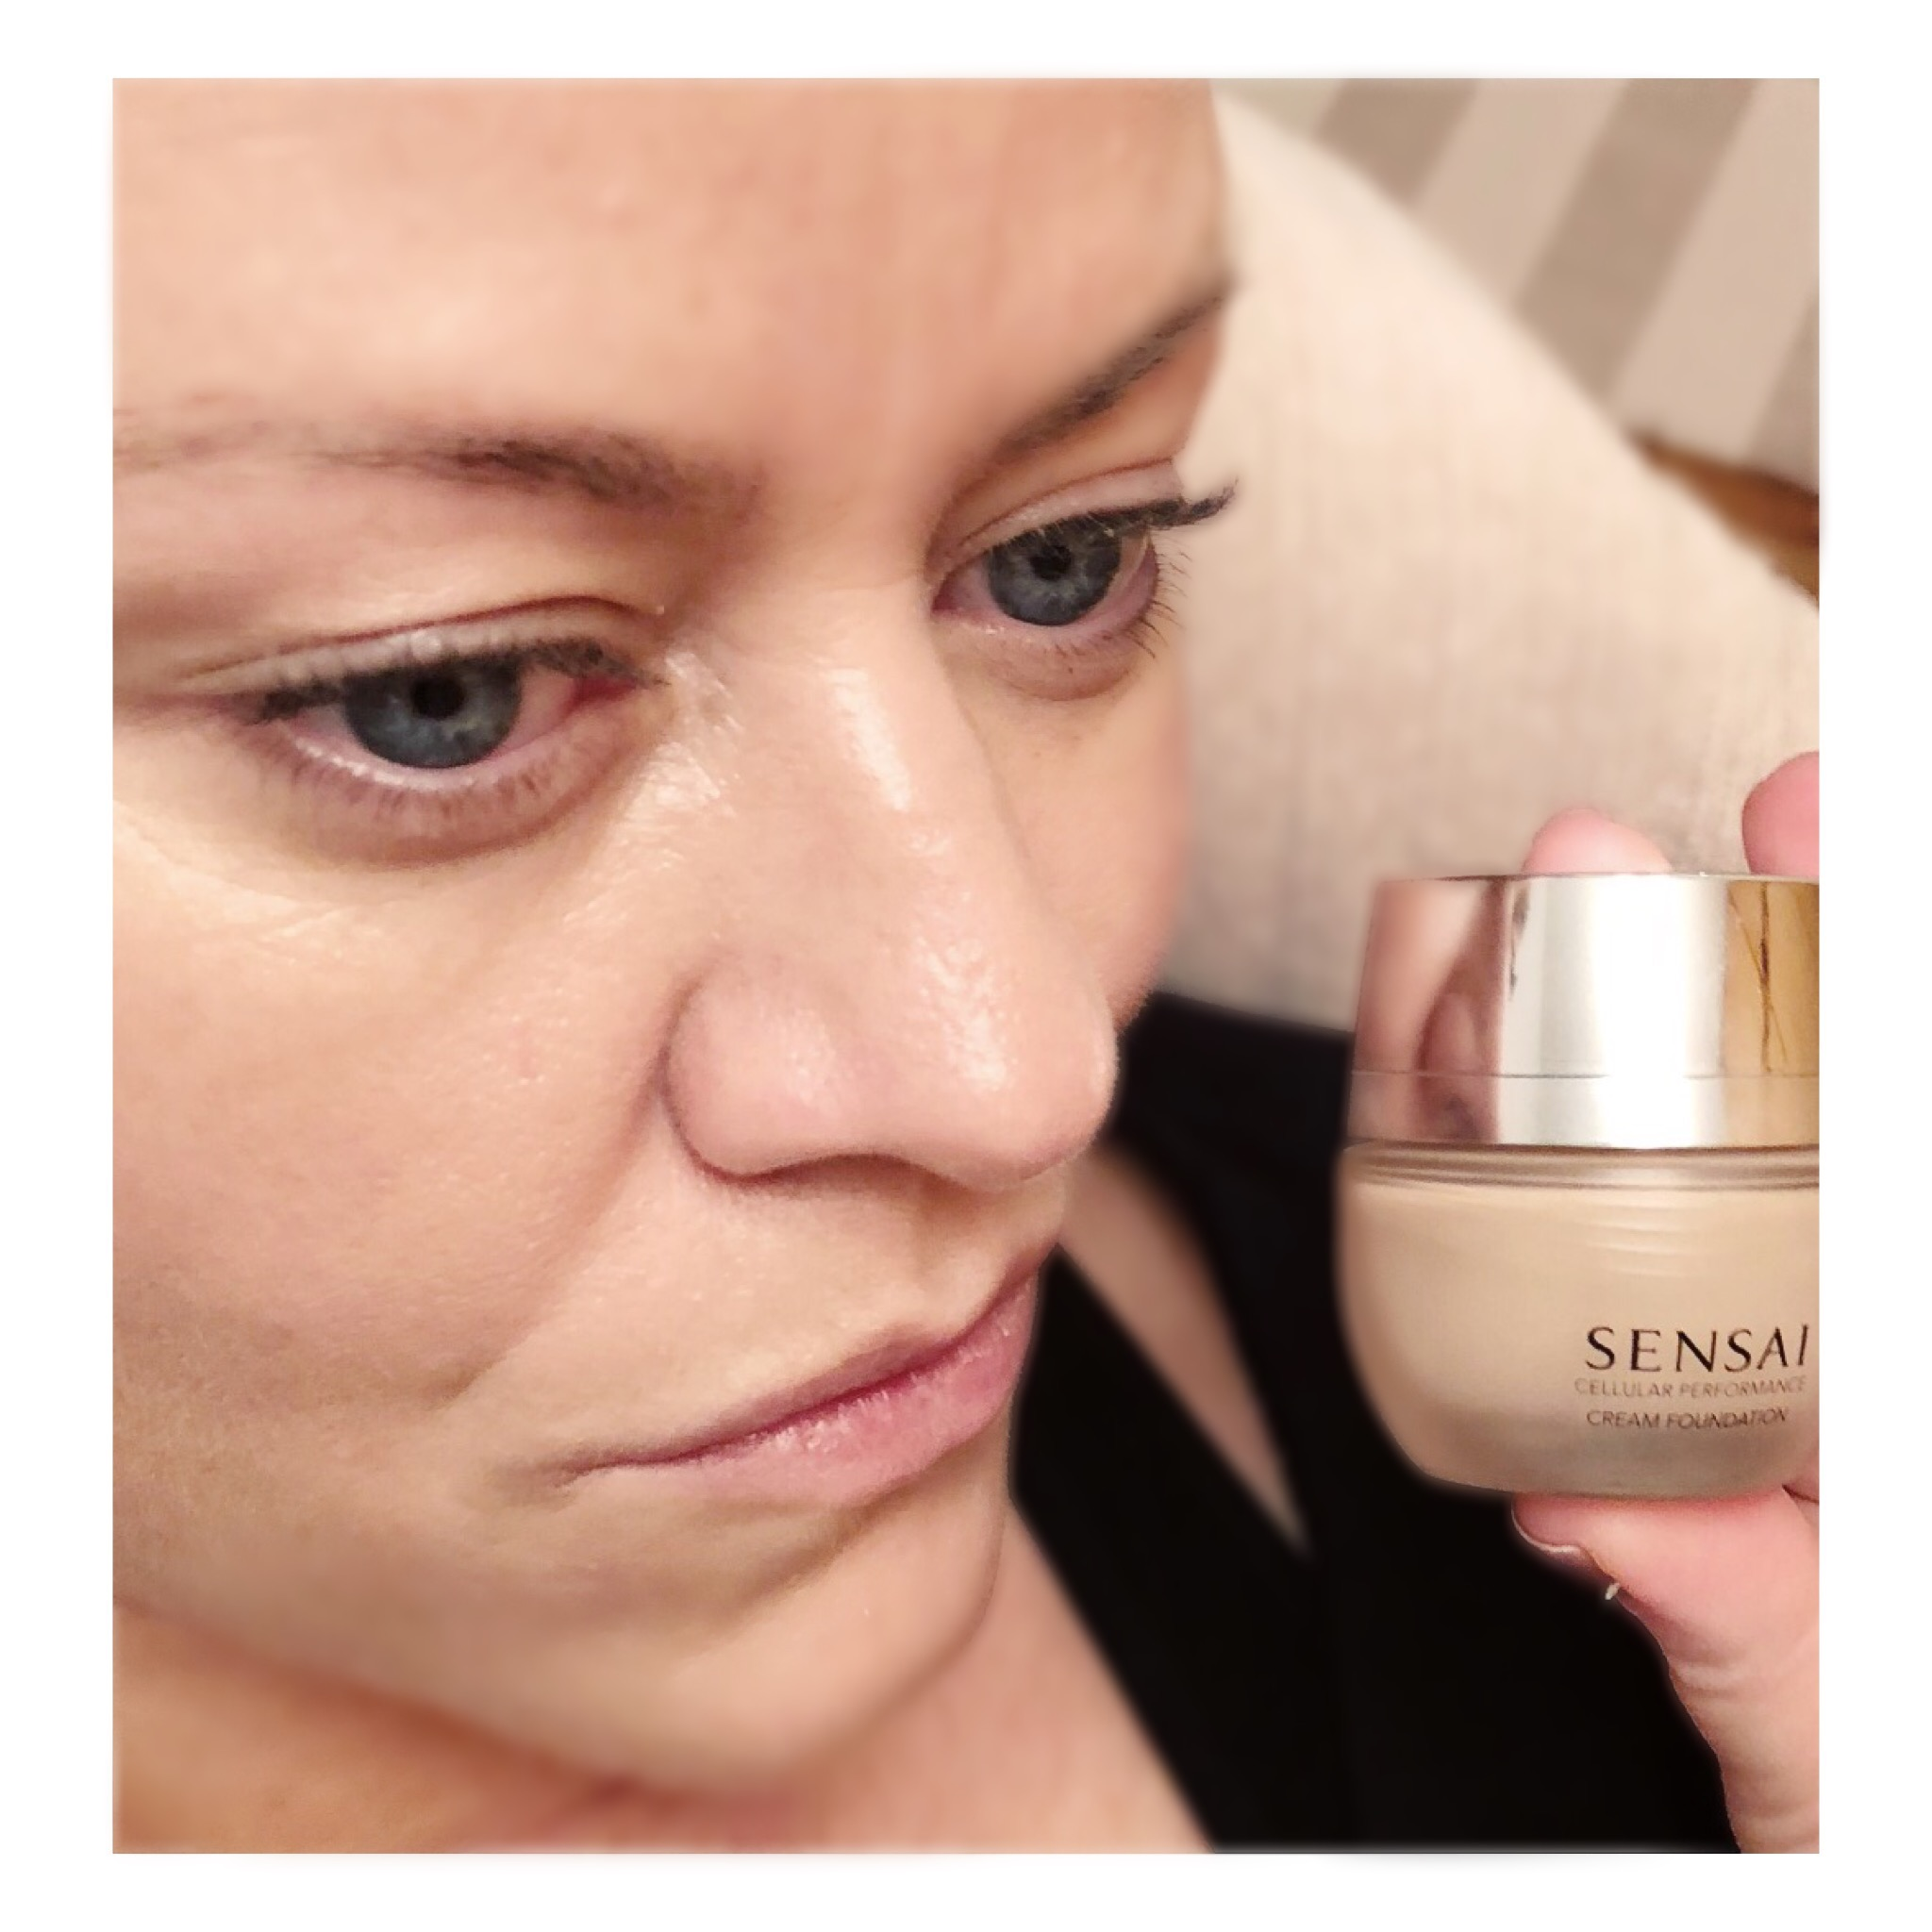 sensai cf cream foundation misses bond